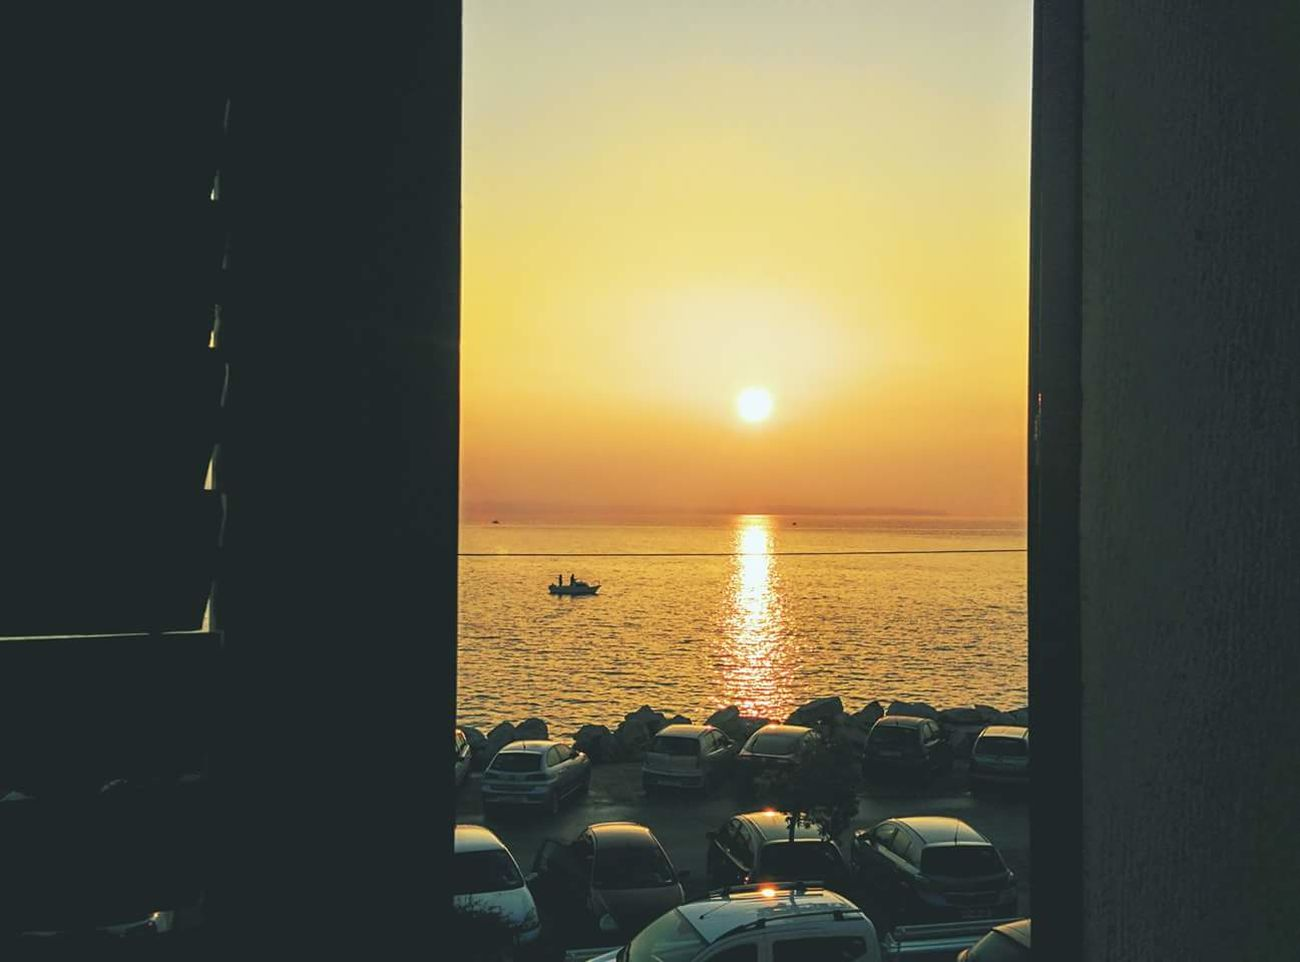 Sunset Sea Sunlight Nature Water Sky Horizon Over Water OutdoorsPositive Vibes Beautiful Light Moment Seaside Travel Destinations Tranquility Beauty In Nature Photooftheday Piran/Pirano Slovenia Window Through The Window Calm Sea Followme